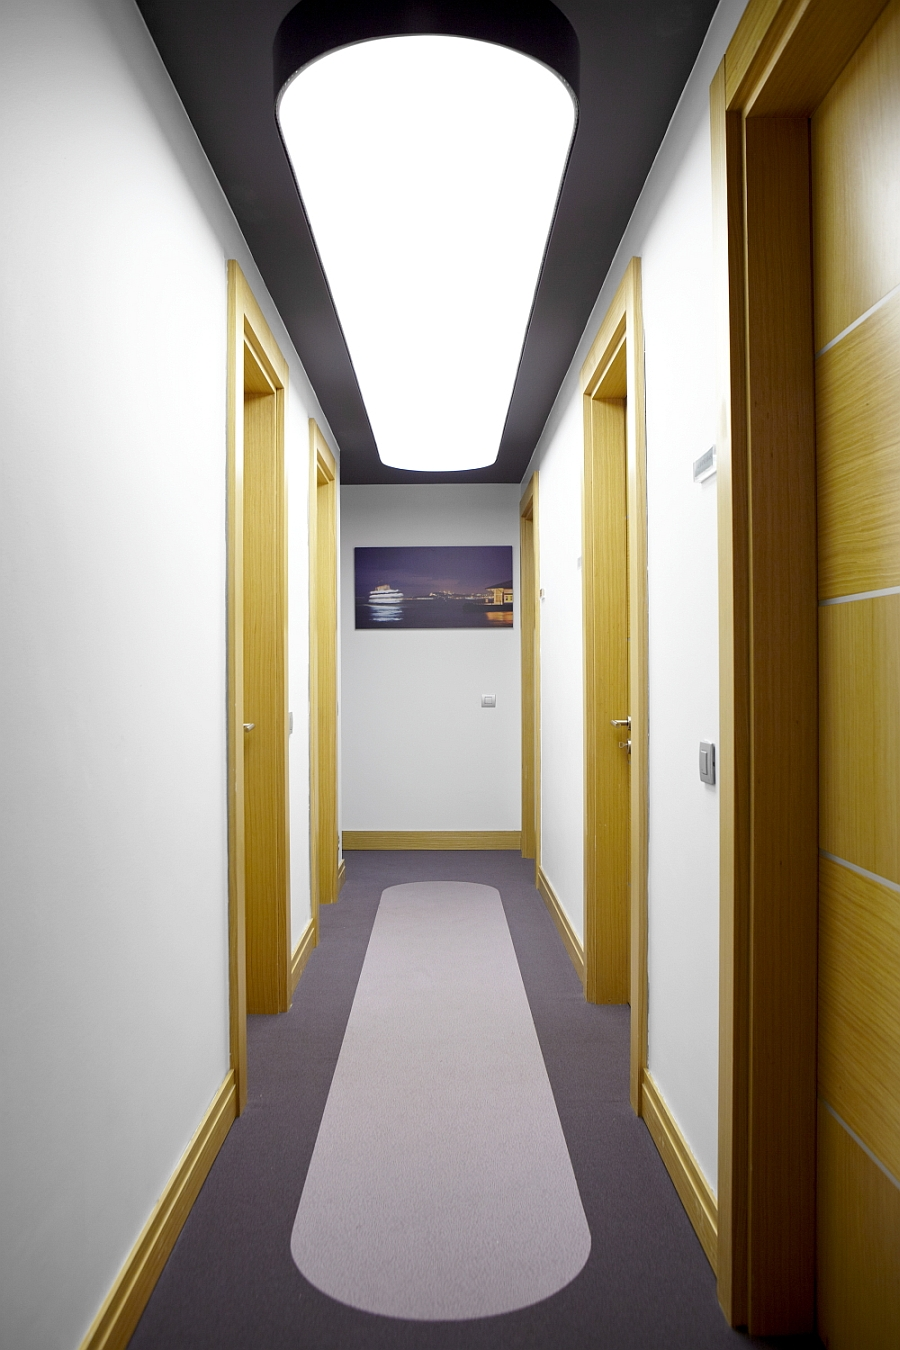 View of the corridor and the rooms inside the clinic